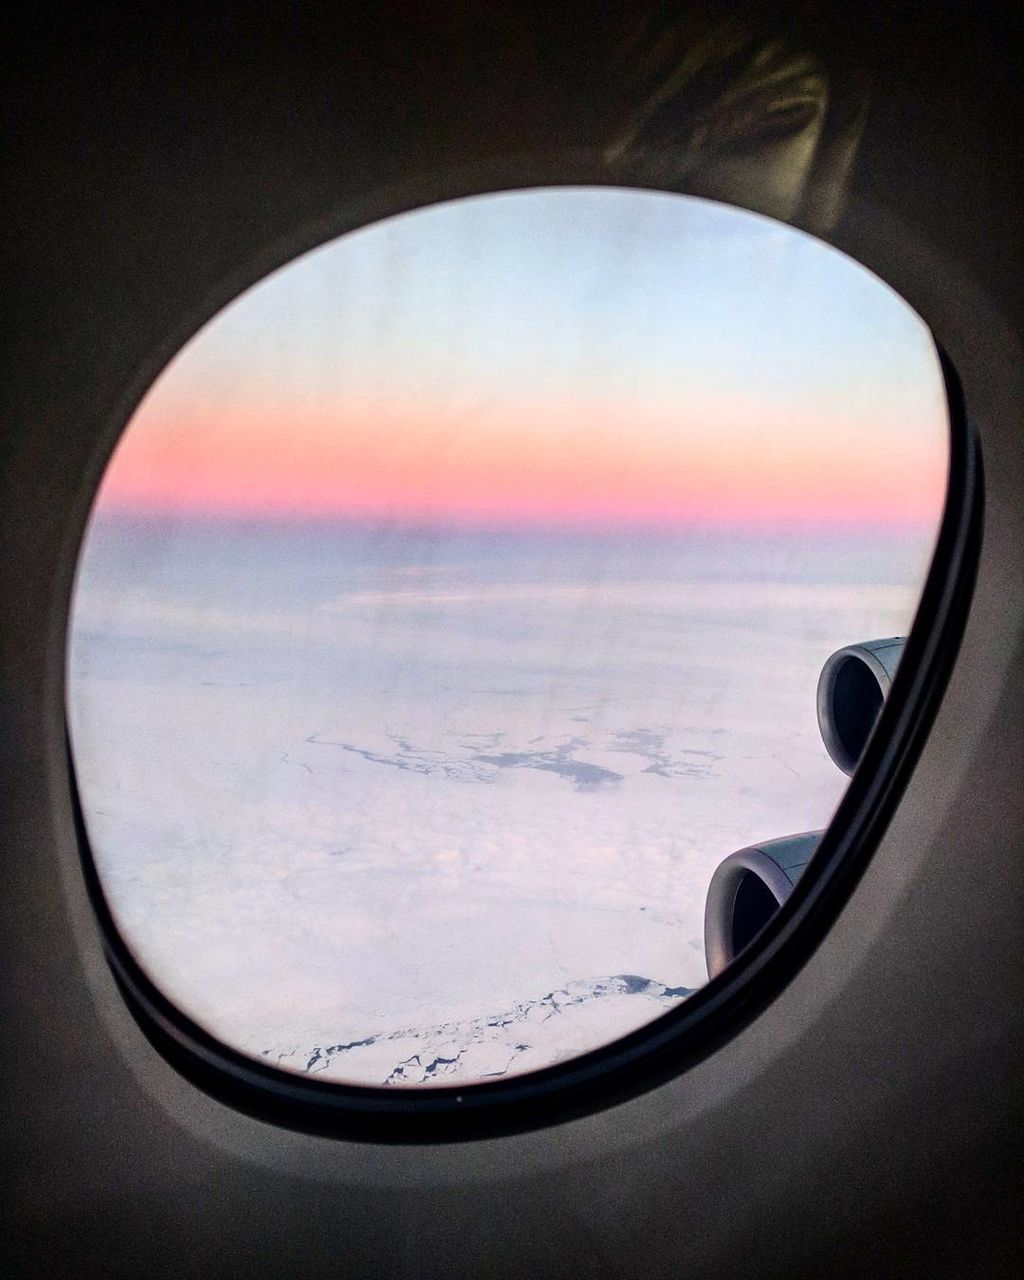 sky, sea, beauty in nature, cloud - sky, sunset, scenics, horizon over water, nature, no people, circle, window, tranquil scene, water, tranquility, landscape, airplane, air vehicle, vehicle part, indoors, close-up, day, airplane wing